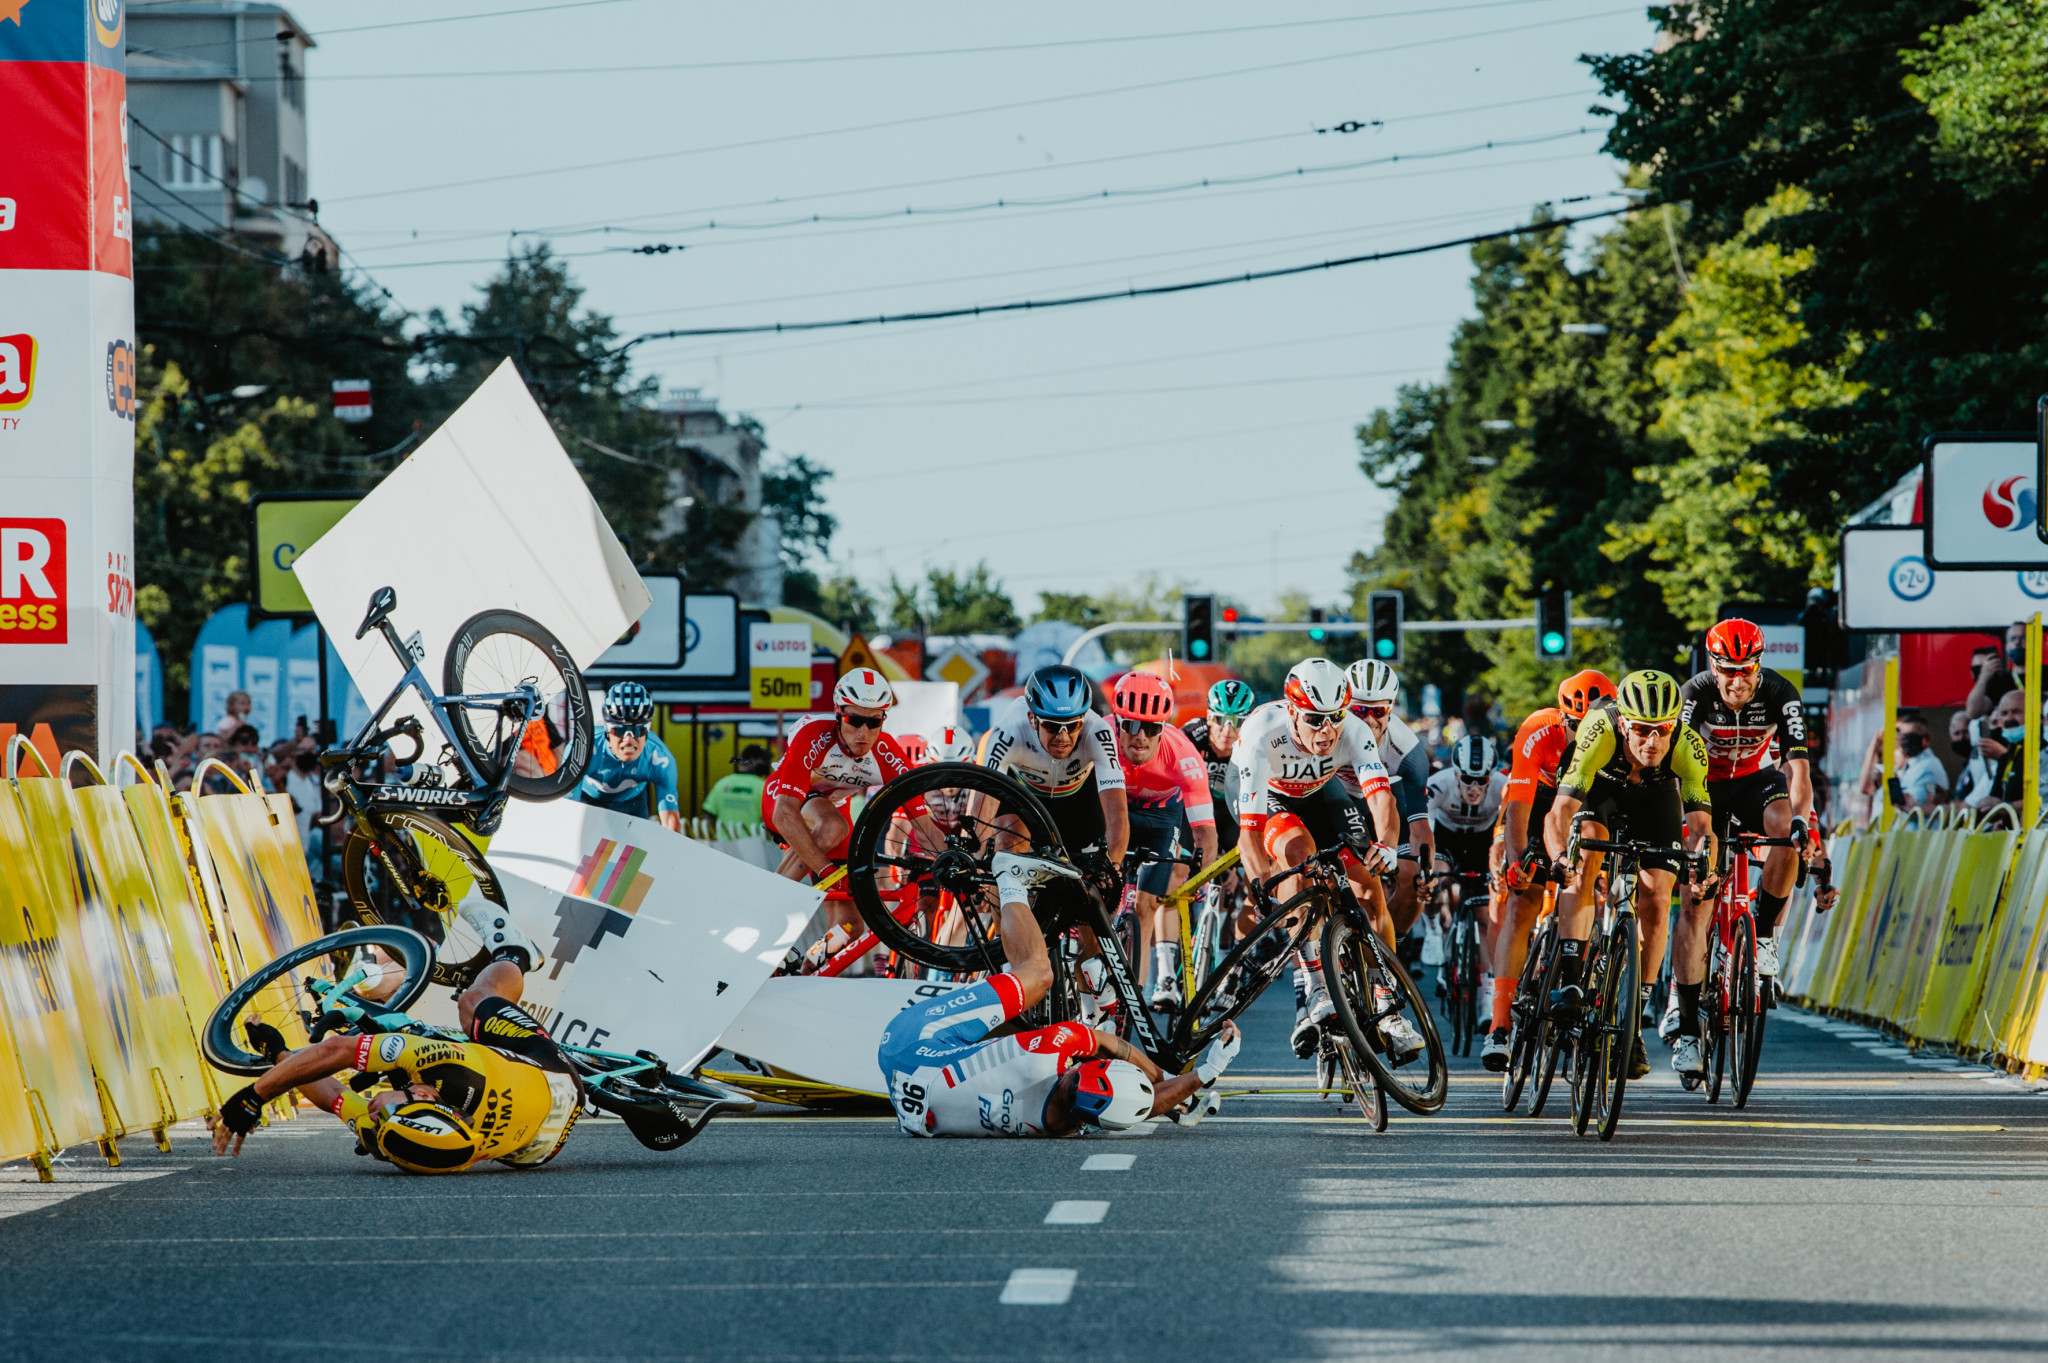 Fabio Jakobsen's crash at the Tour of Pologne was among the high-profile incidents since racing resumed ©Getty Images